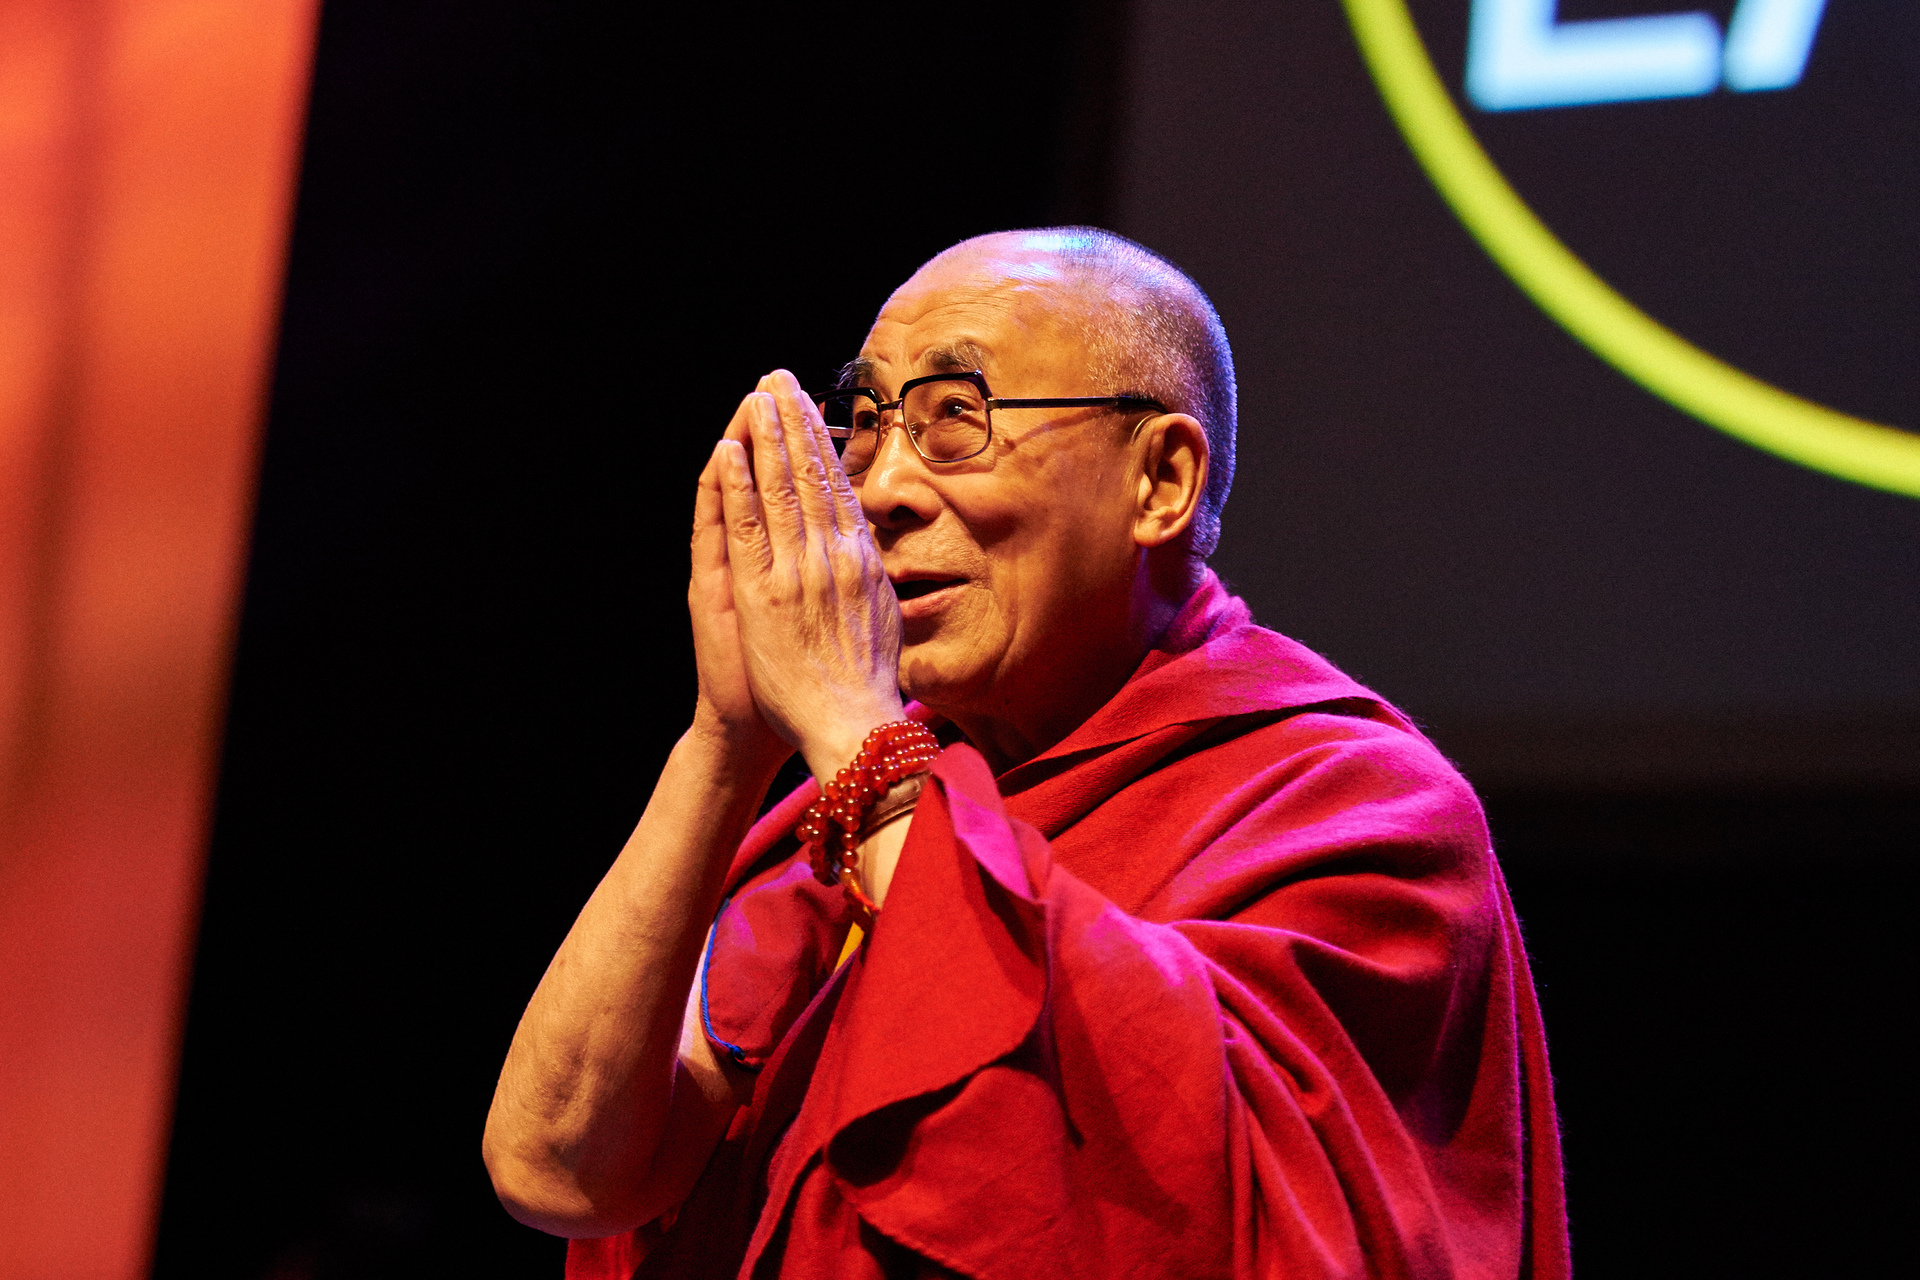 His Holiness the Dalai Lama the 14th Dalai Lama